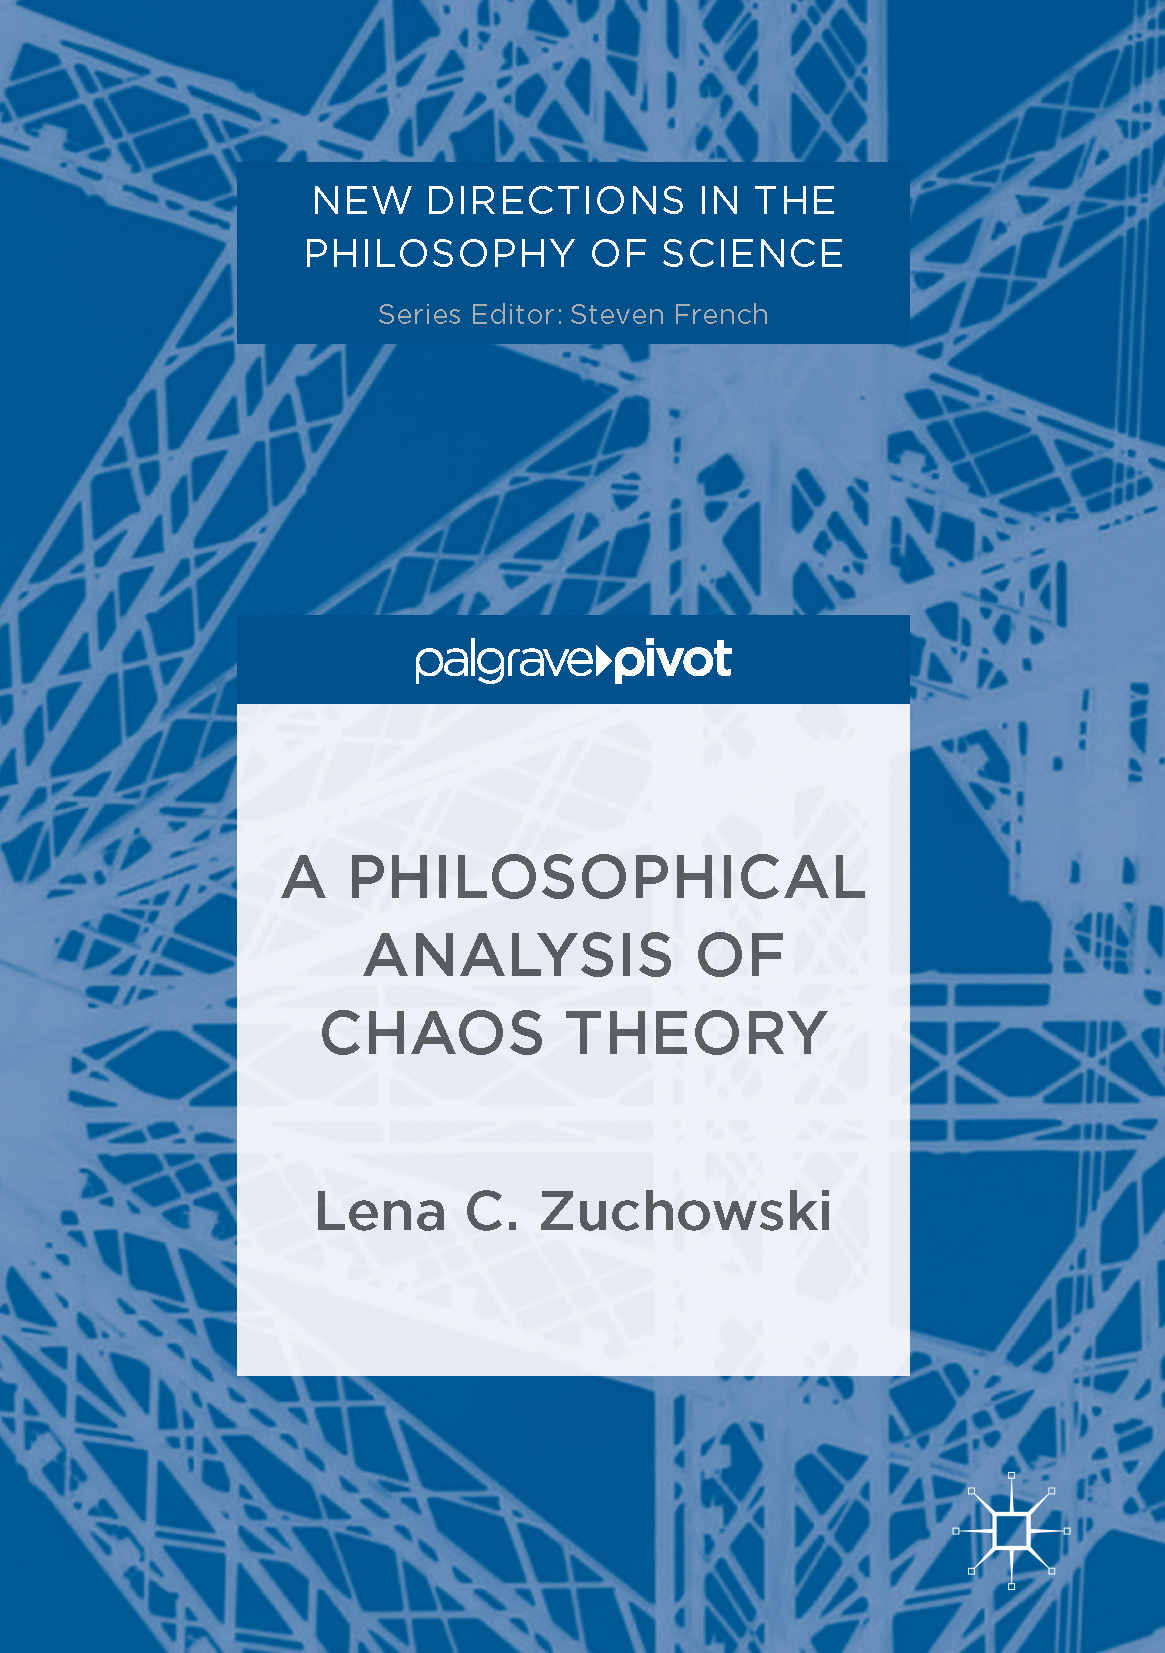 Zuchowski, Lena C. - A Philosophical Analysis of Chaos Theory, ebook